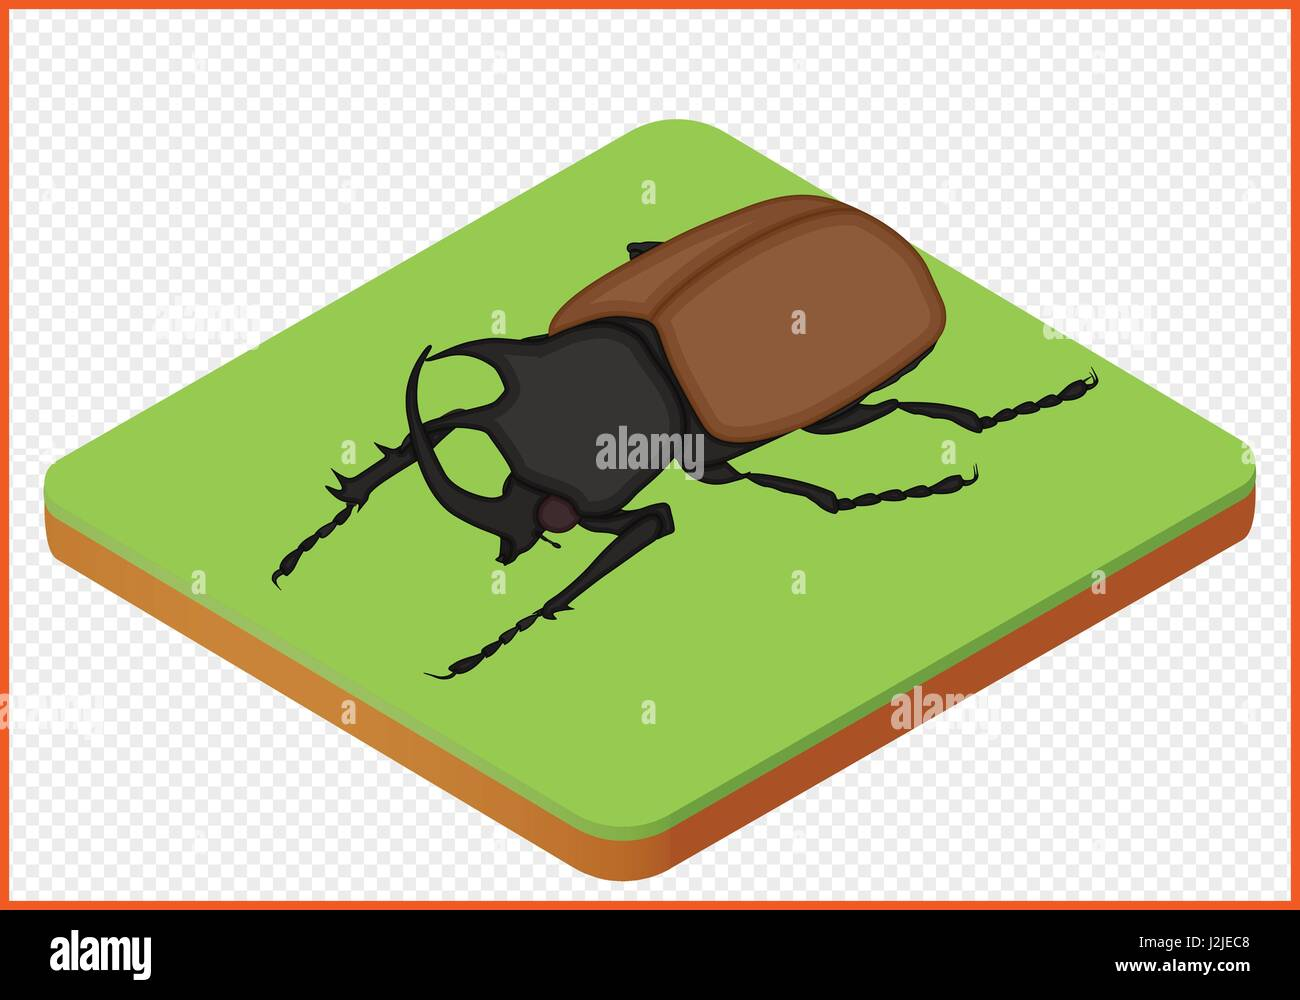 beetle vector eps - Stock Vector